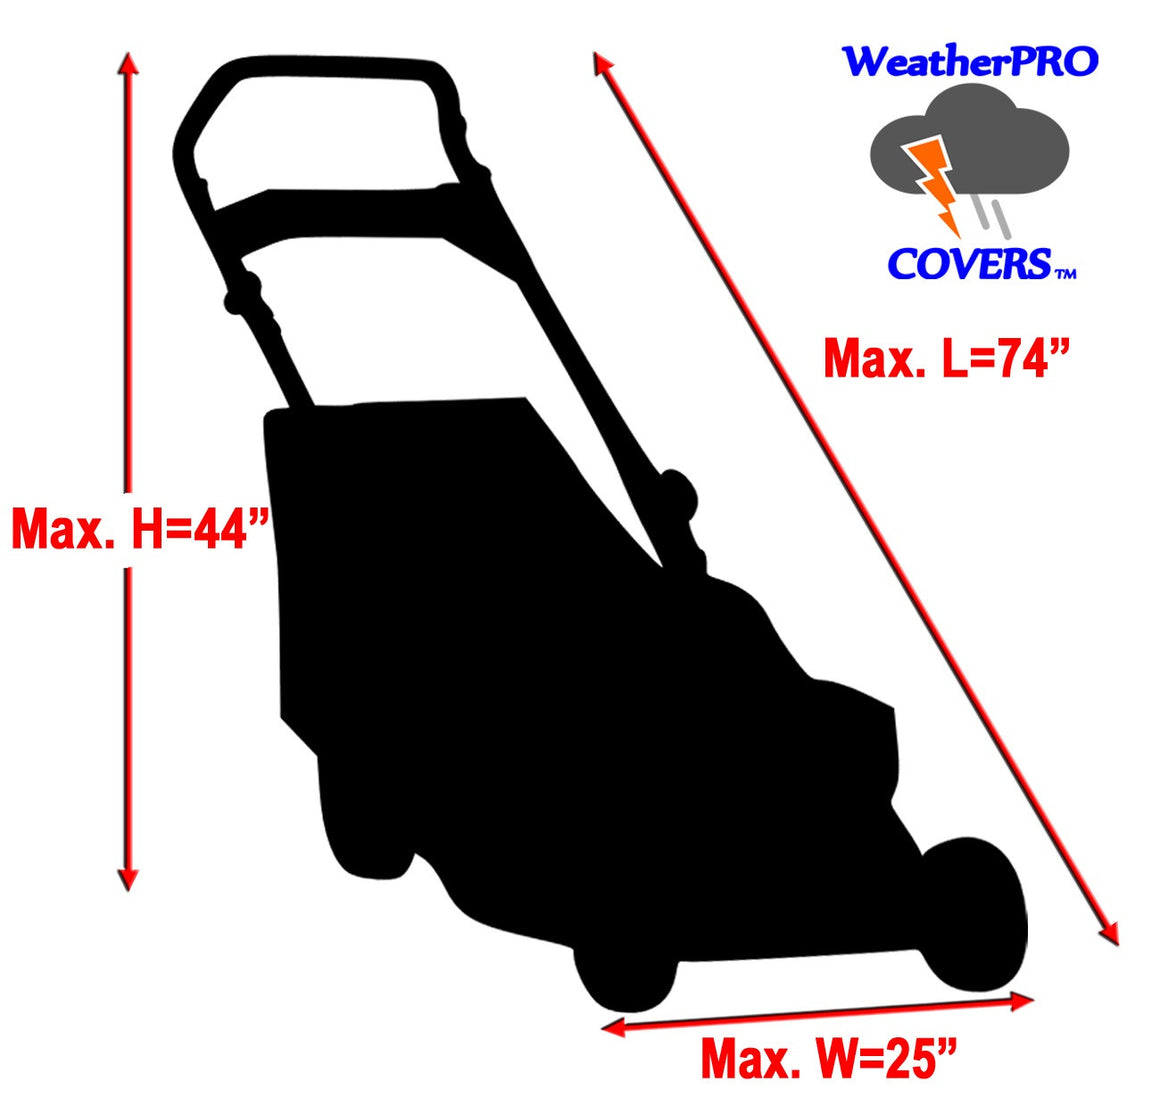 WeatherPRO Lawn Mower Cover - Black - WeatherPRO Cover,  Lawn Mower Cover - Lawn Mower Cover